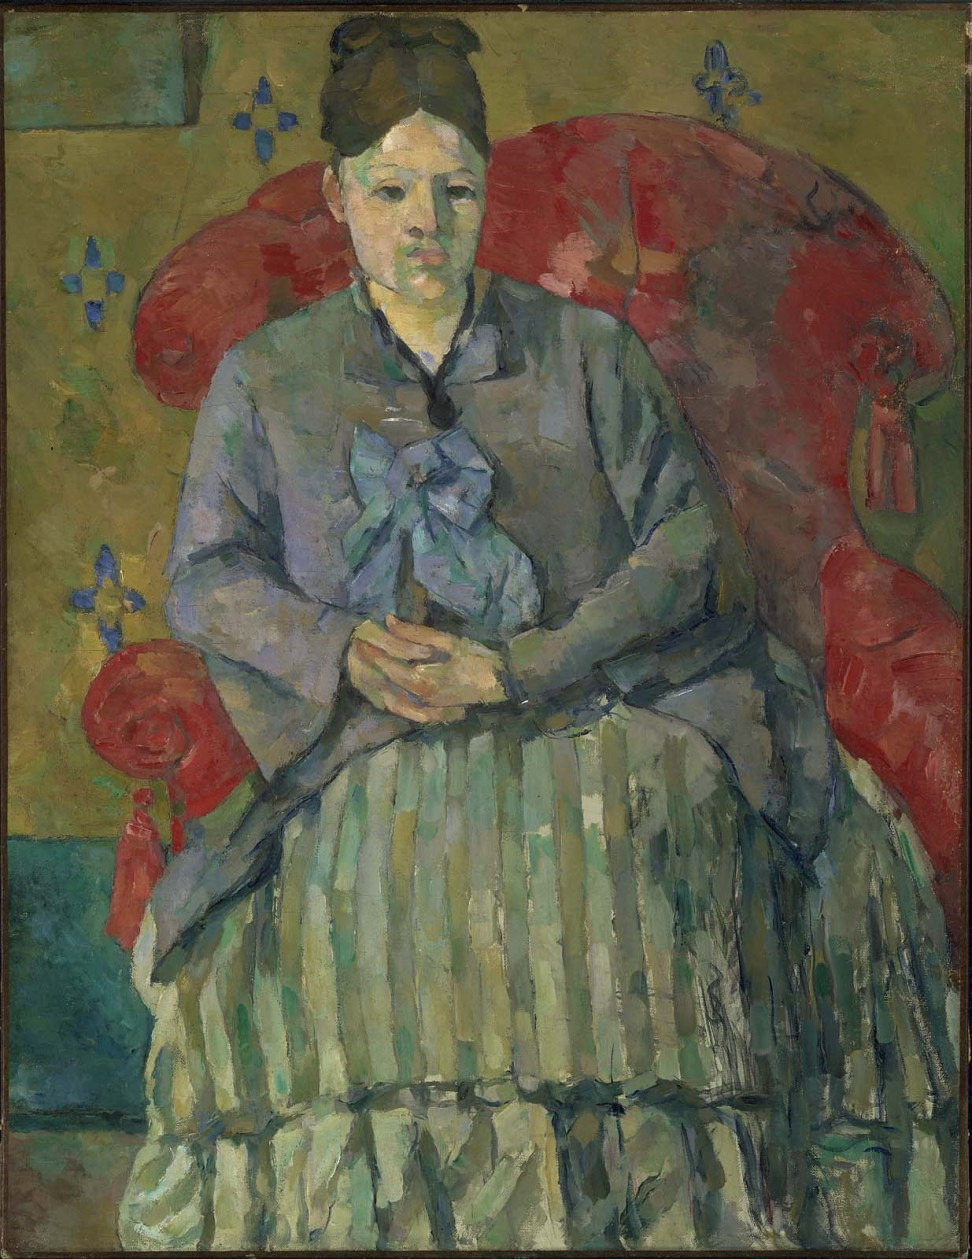 Paul Cézanne, Madame Cézanne in a Red Armchair, ca. 1877. Oil on canvas. Museum of Fine Arts Boston.